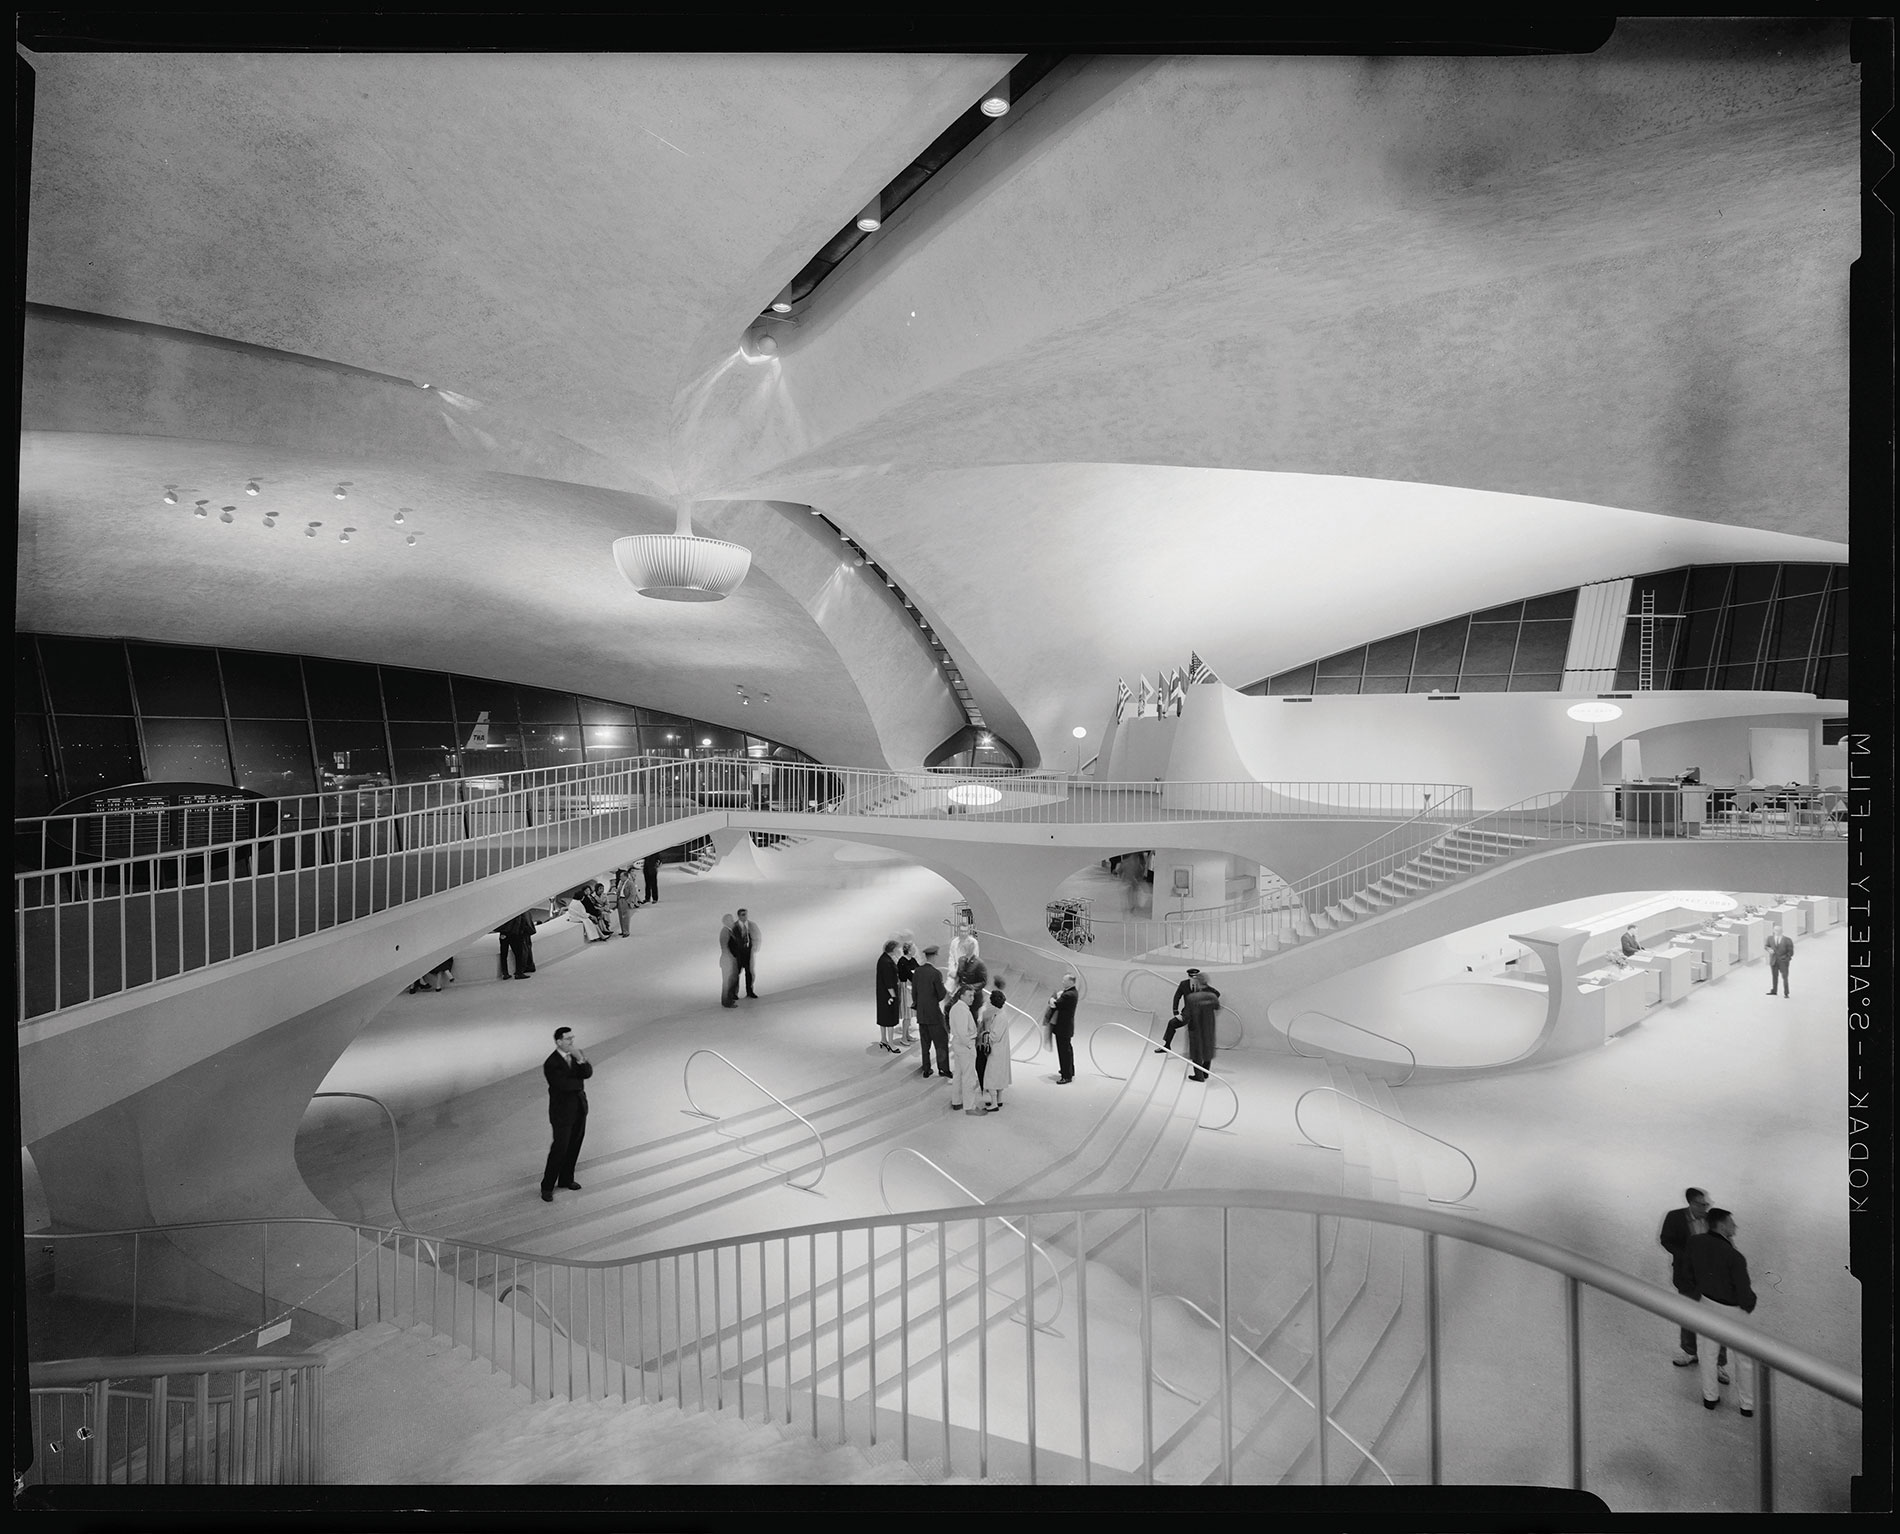 Interior of the TWA Terminal in 1956. Front of TWA Hotel. Photo Credit: Berlin Rosen / Balthazar Korab